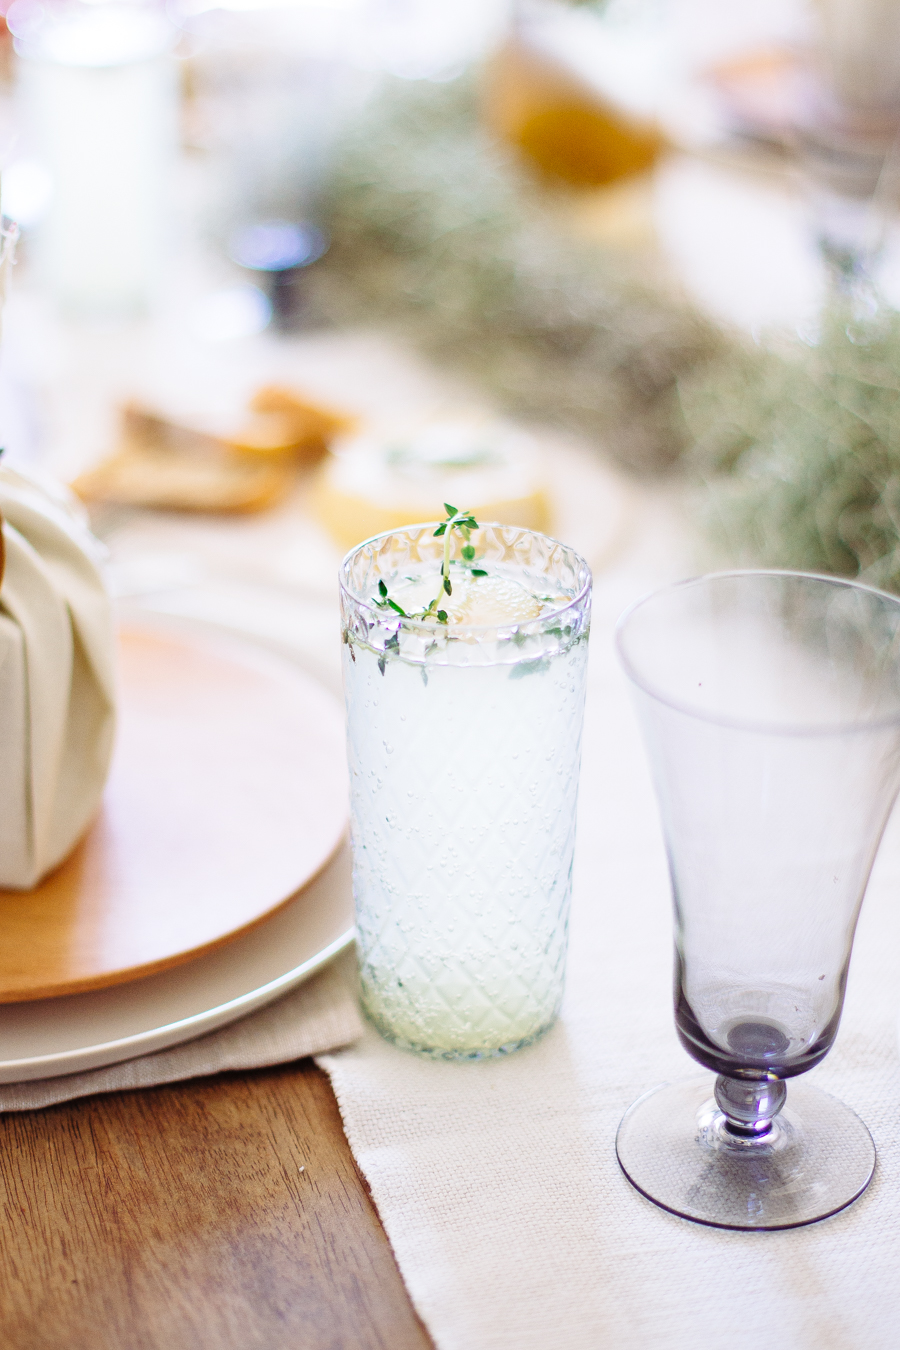 sonjacphotography-foodstyling-1a